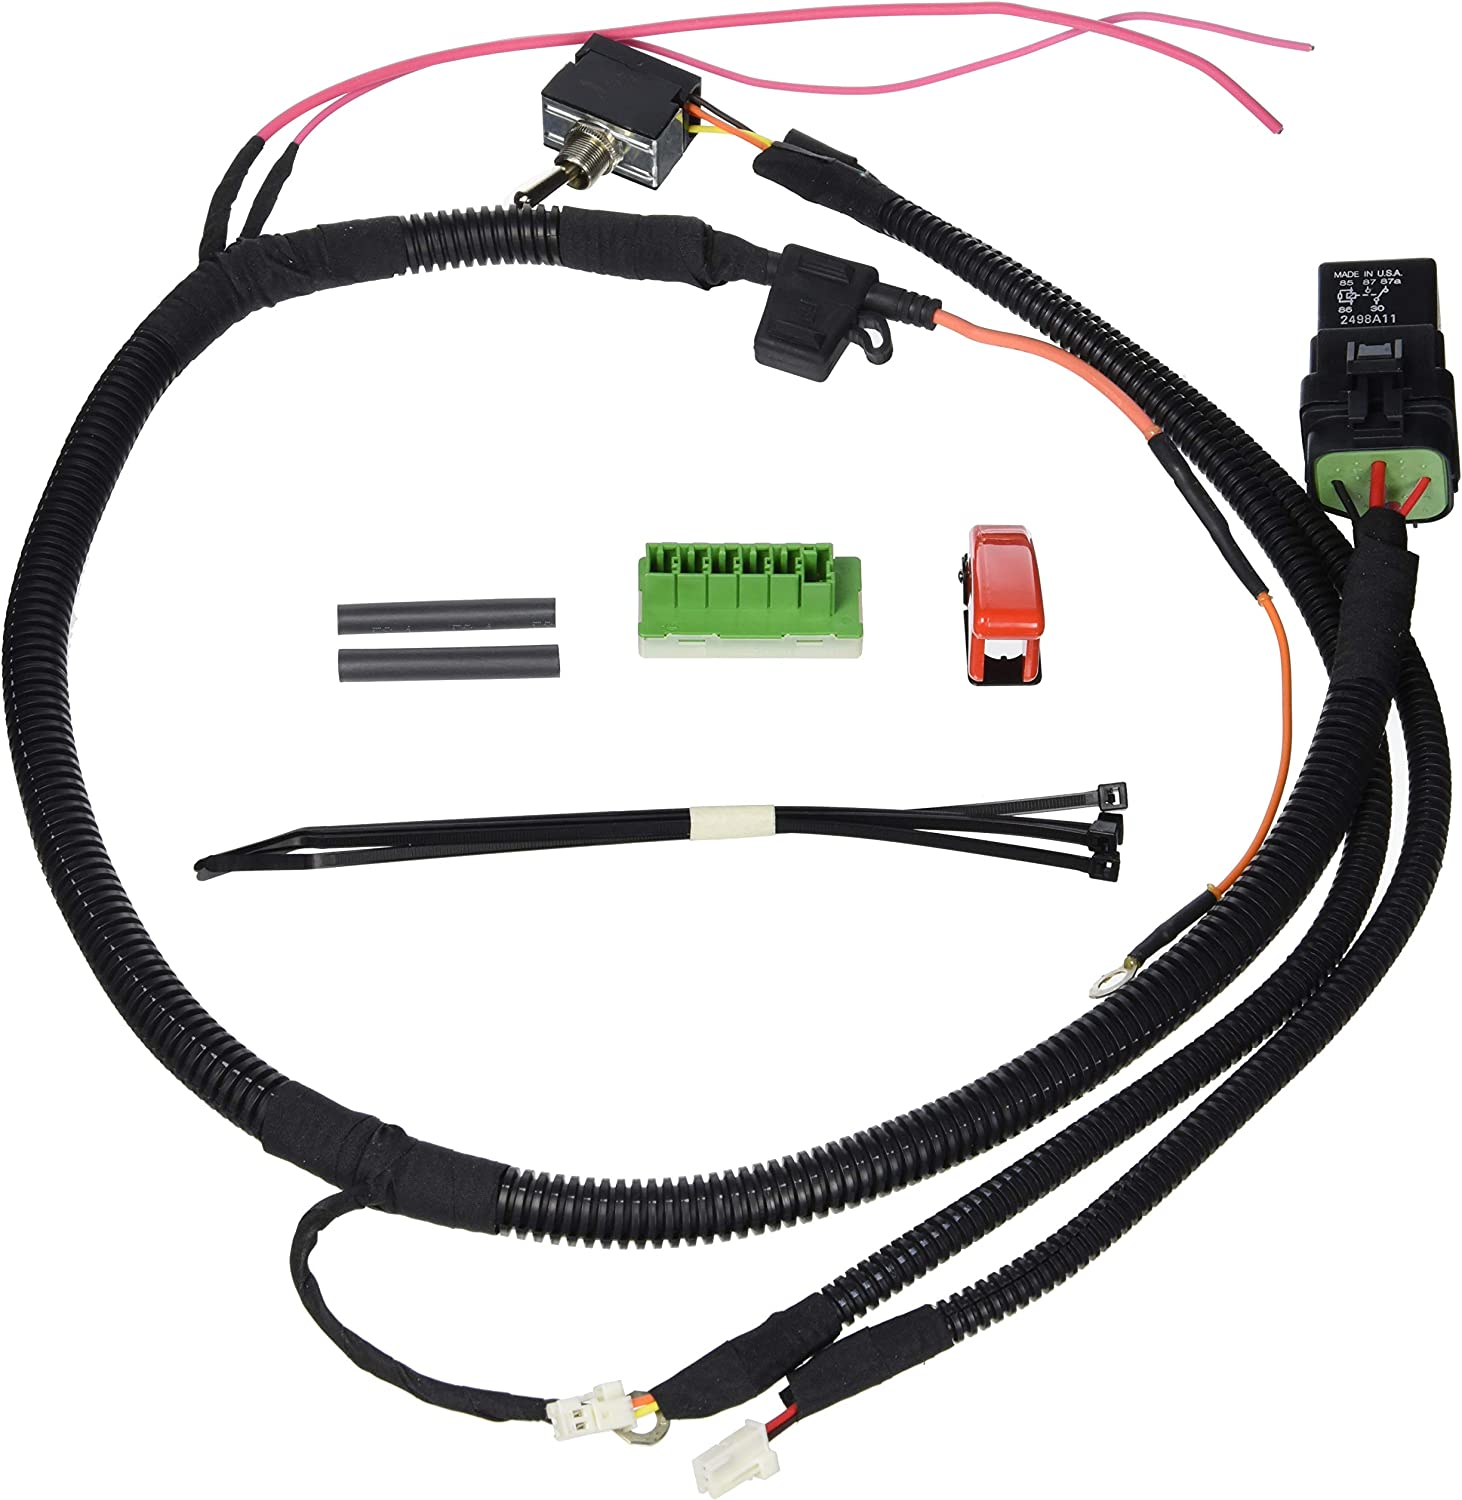 jeep cherokee flat tow wiring harness - wiring diagrams button faint-breed  - faint-breed.lamorciola.it  faint-breed.lamorciola.it